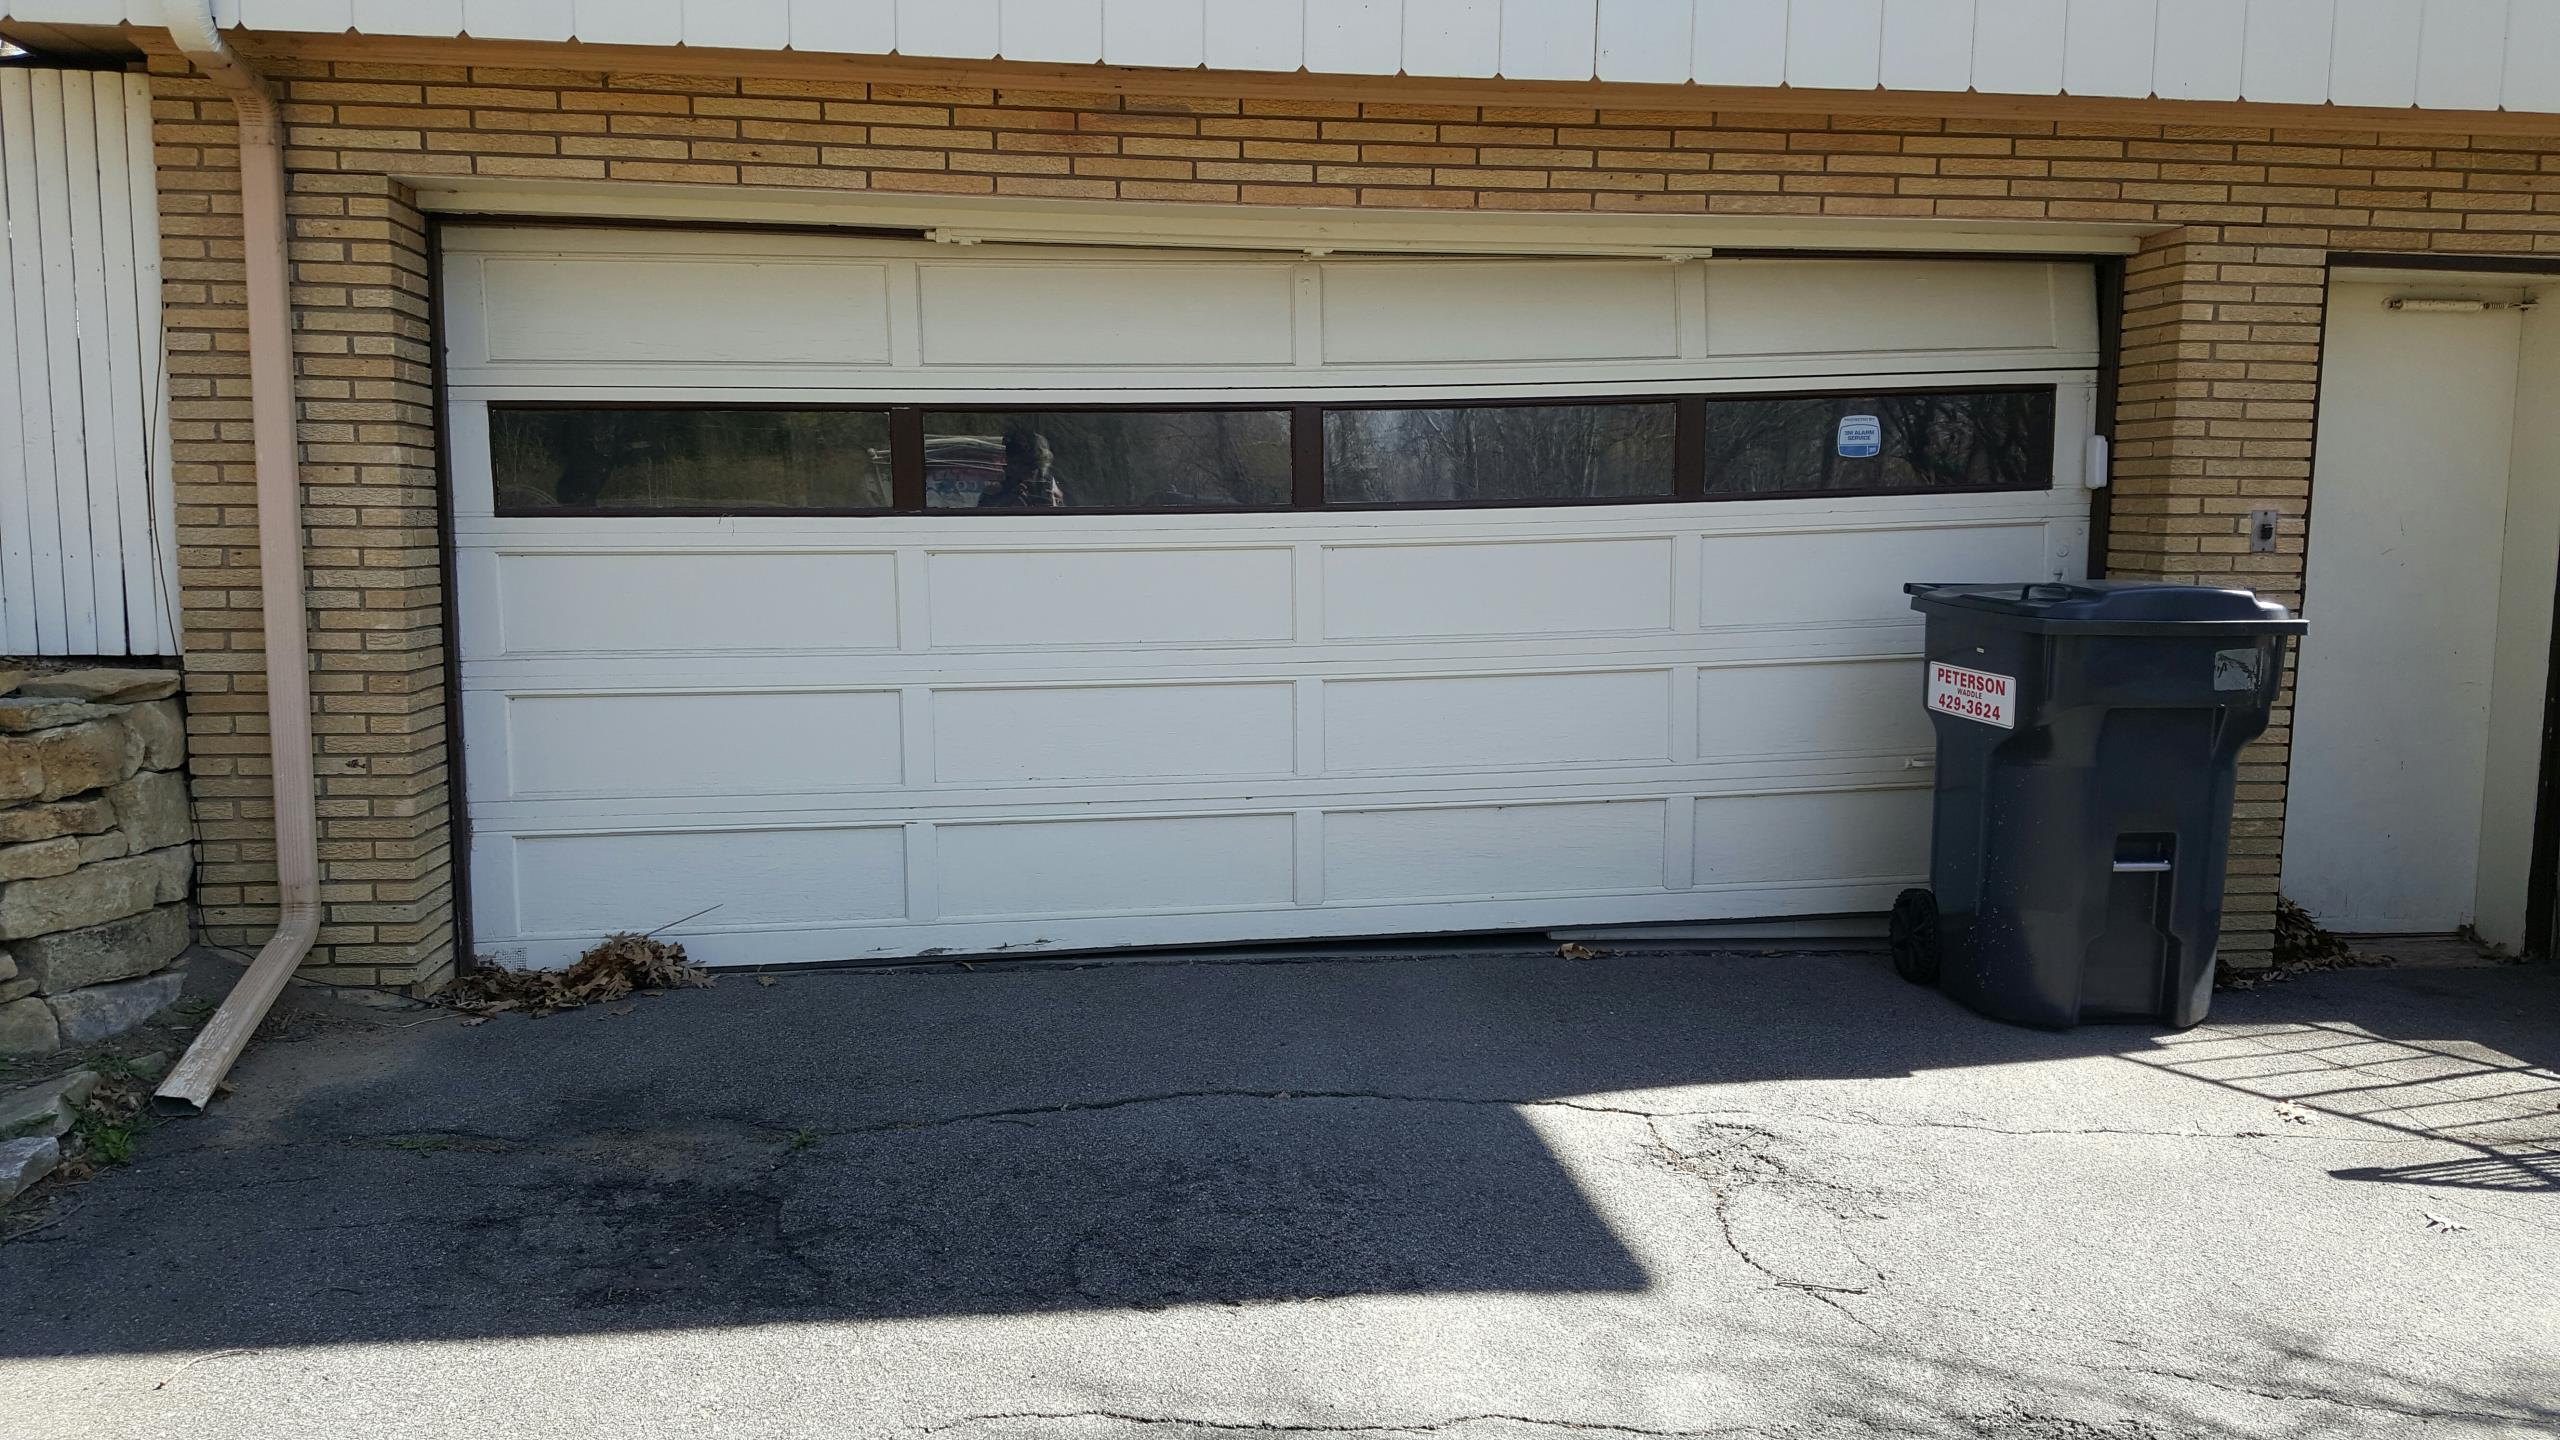 North Oaks, MN - Free estimate for garage door replacement